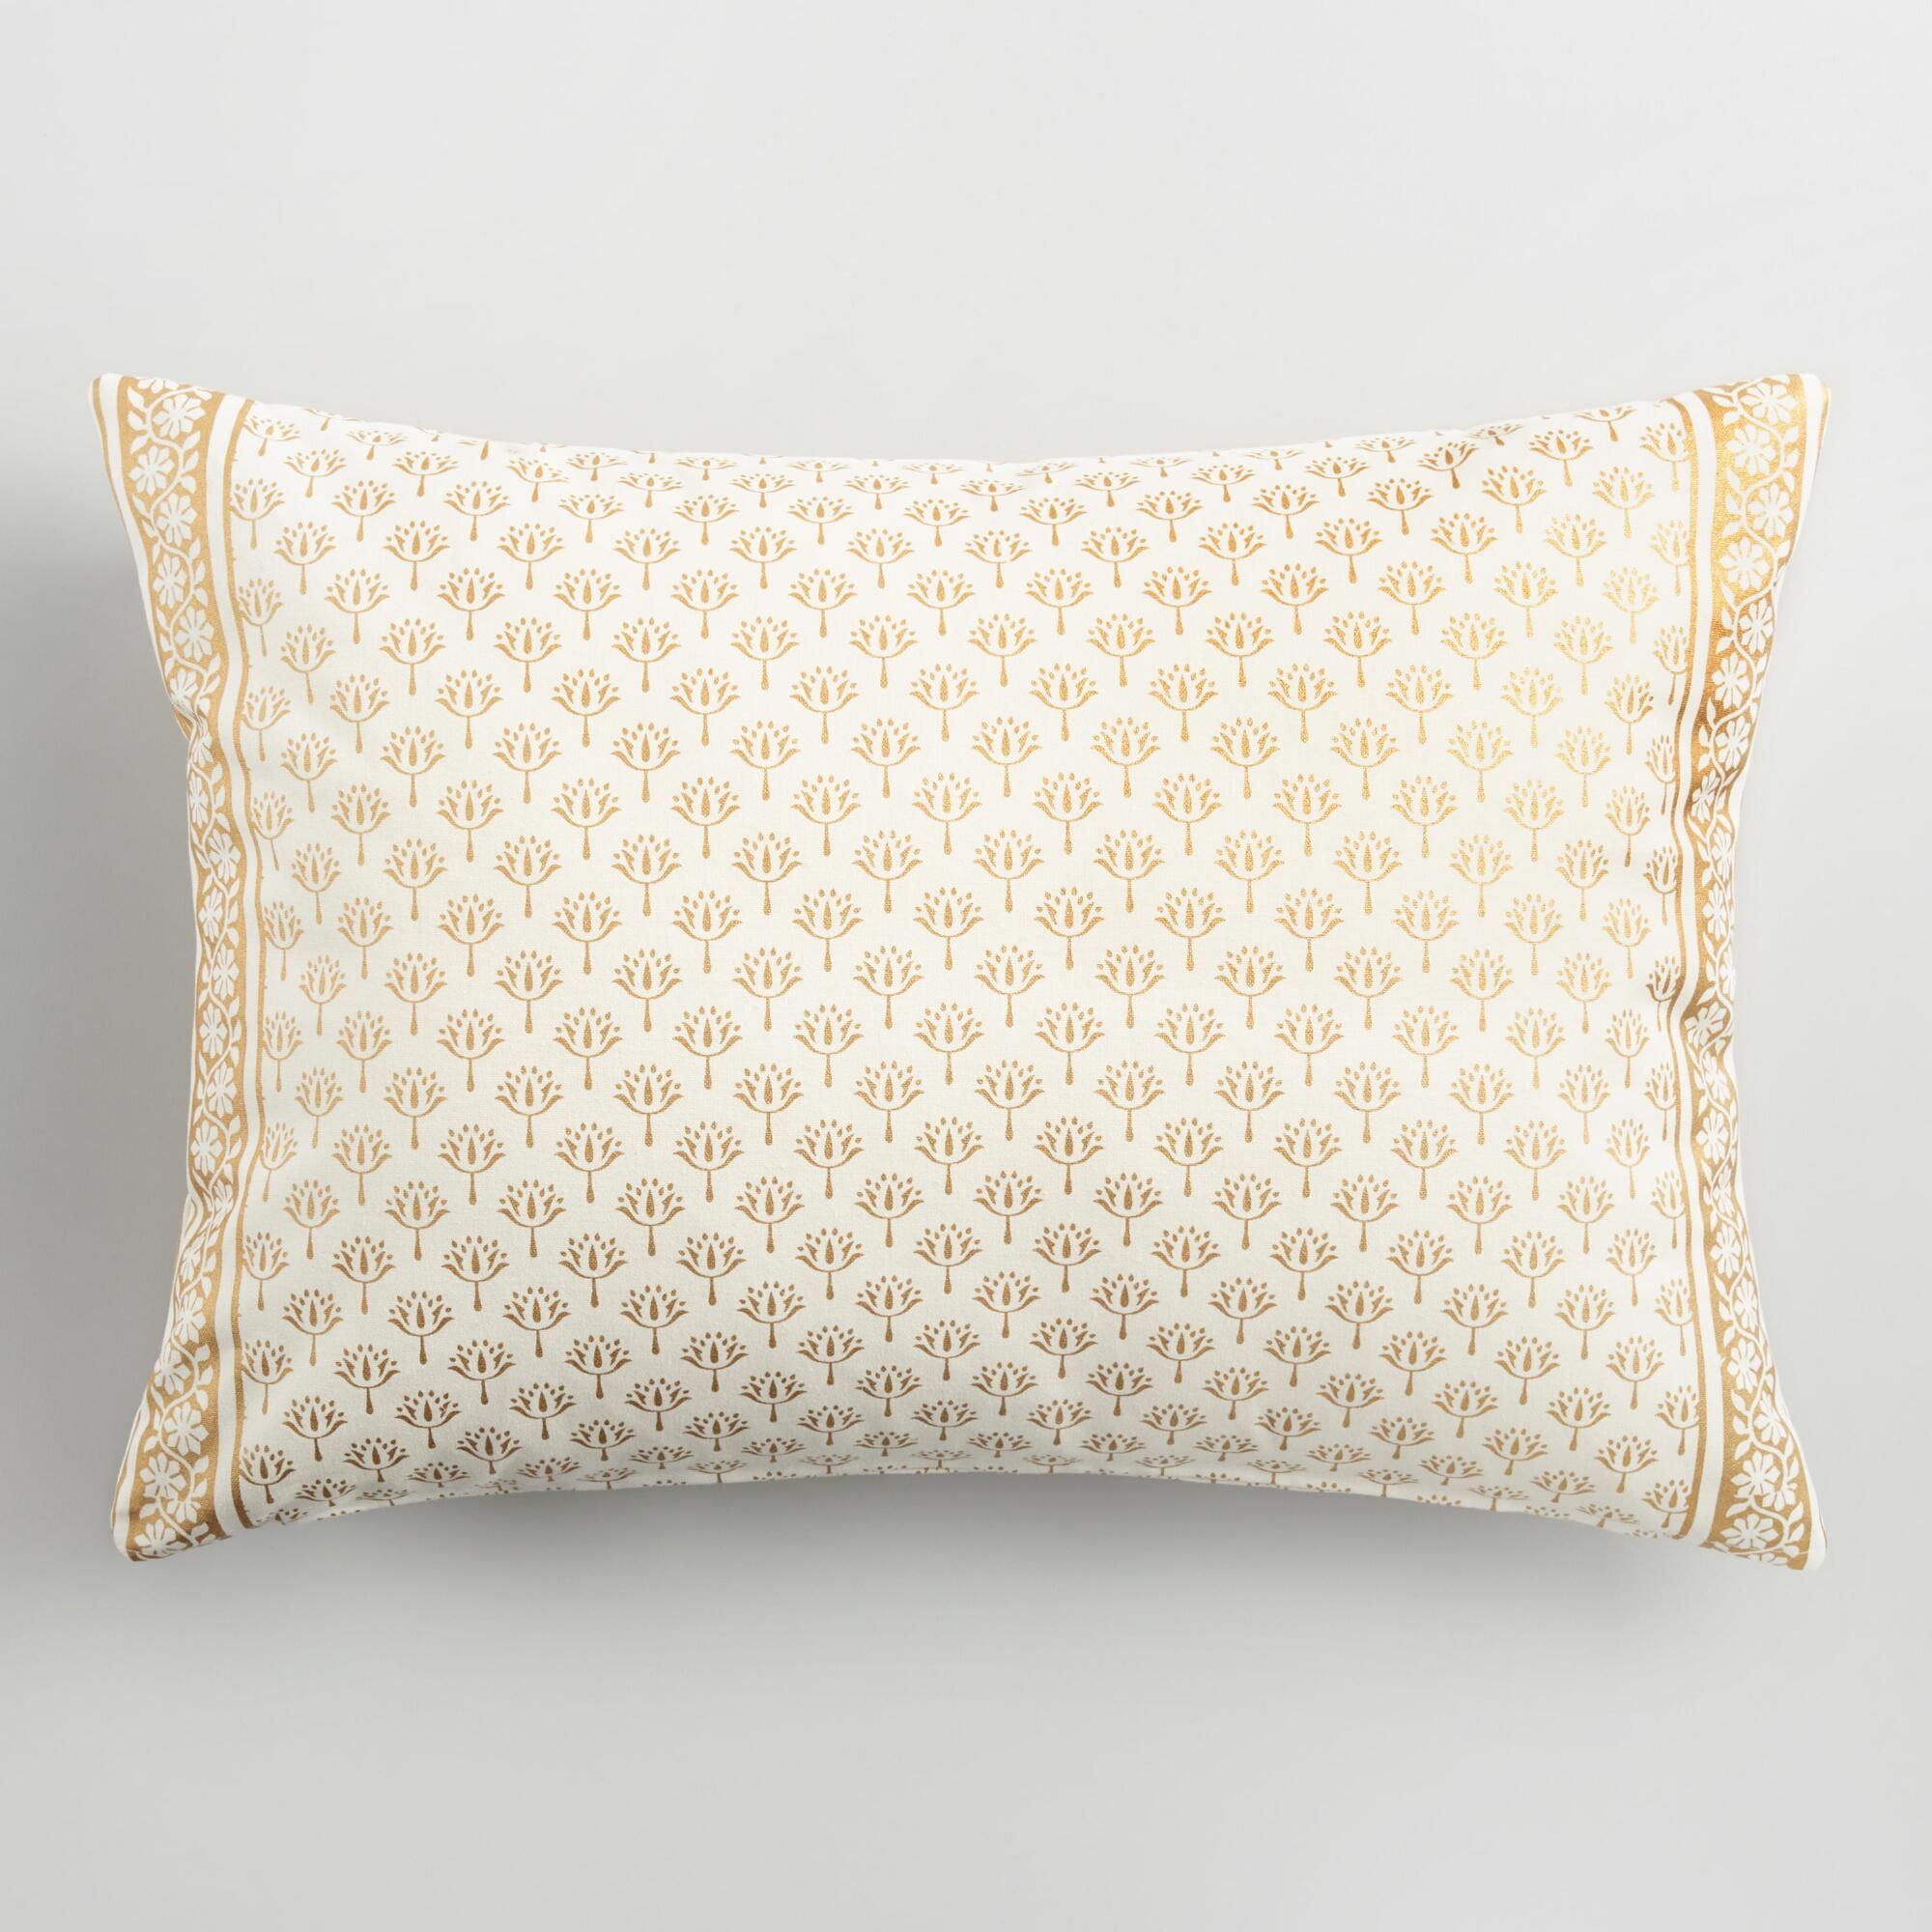 The Charming Ivory And Gold-flecked Lotus Flower Pattern